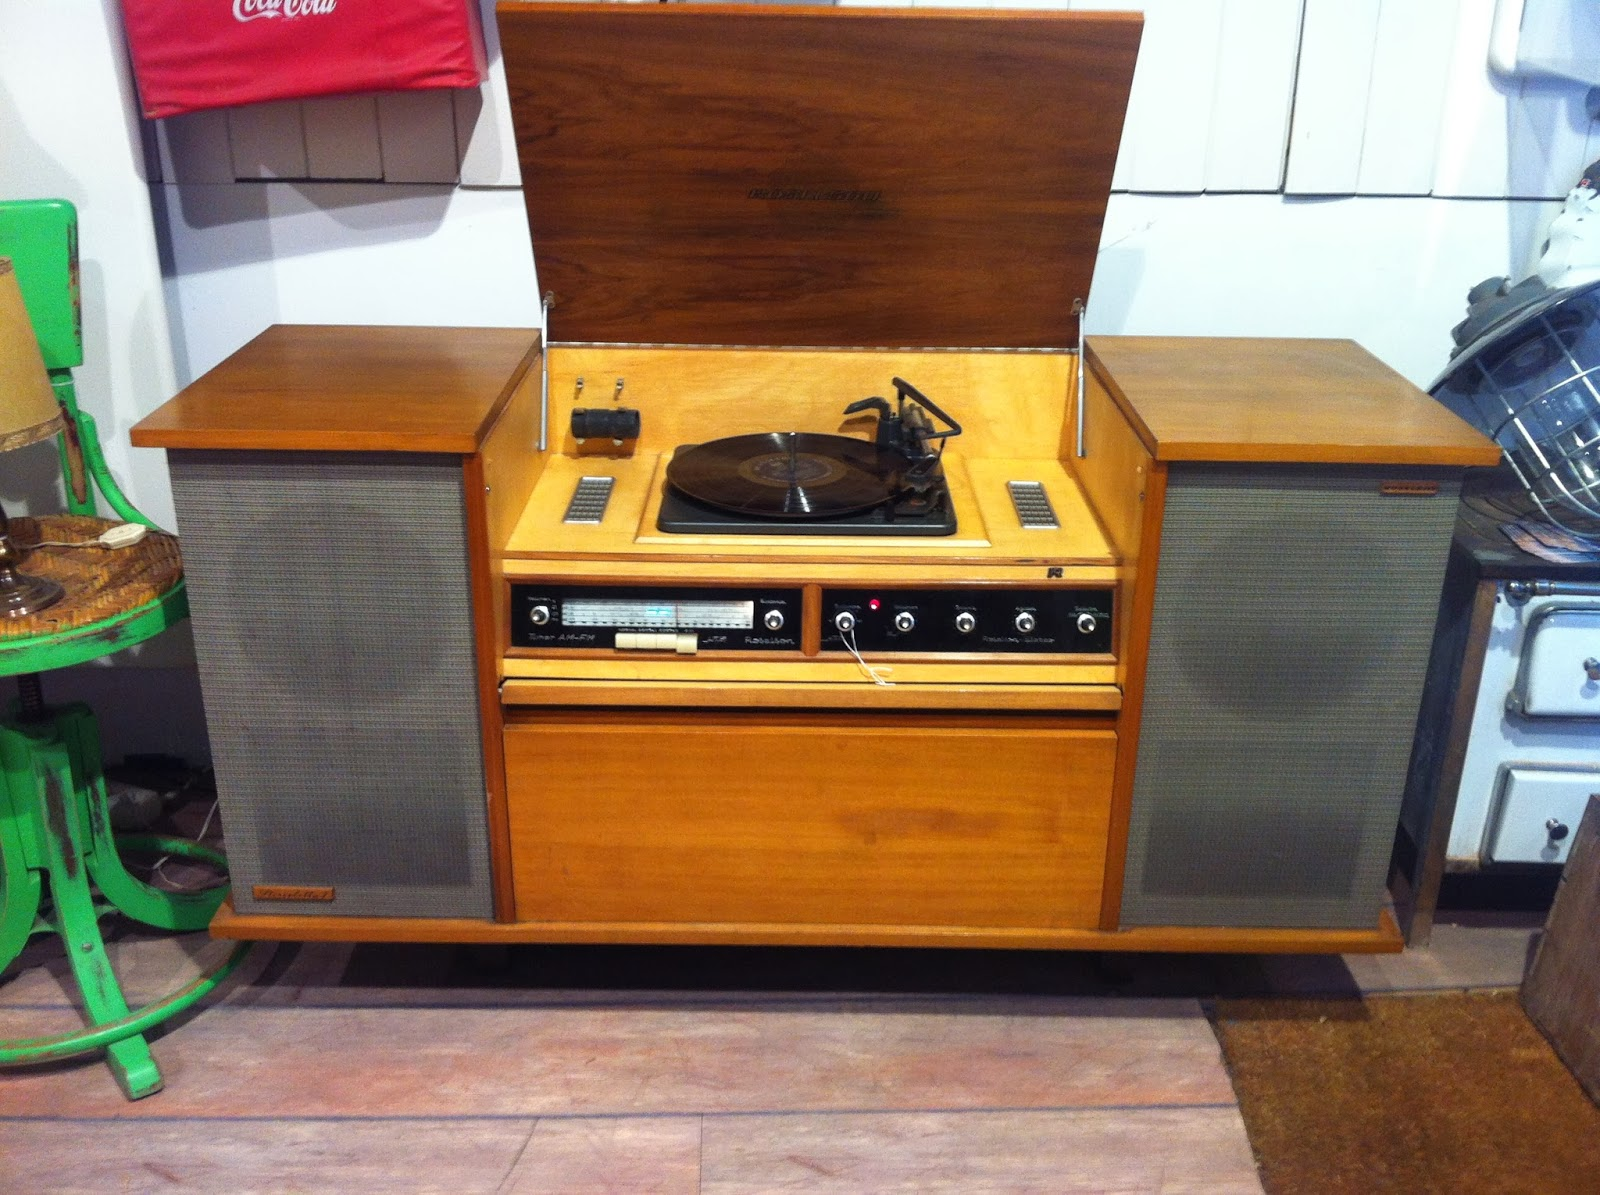 Decoraci n vintage antiguitats baraturantic mueble radio tocadiscos roselson - Mueble tocadiscos ...